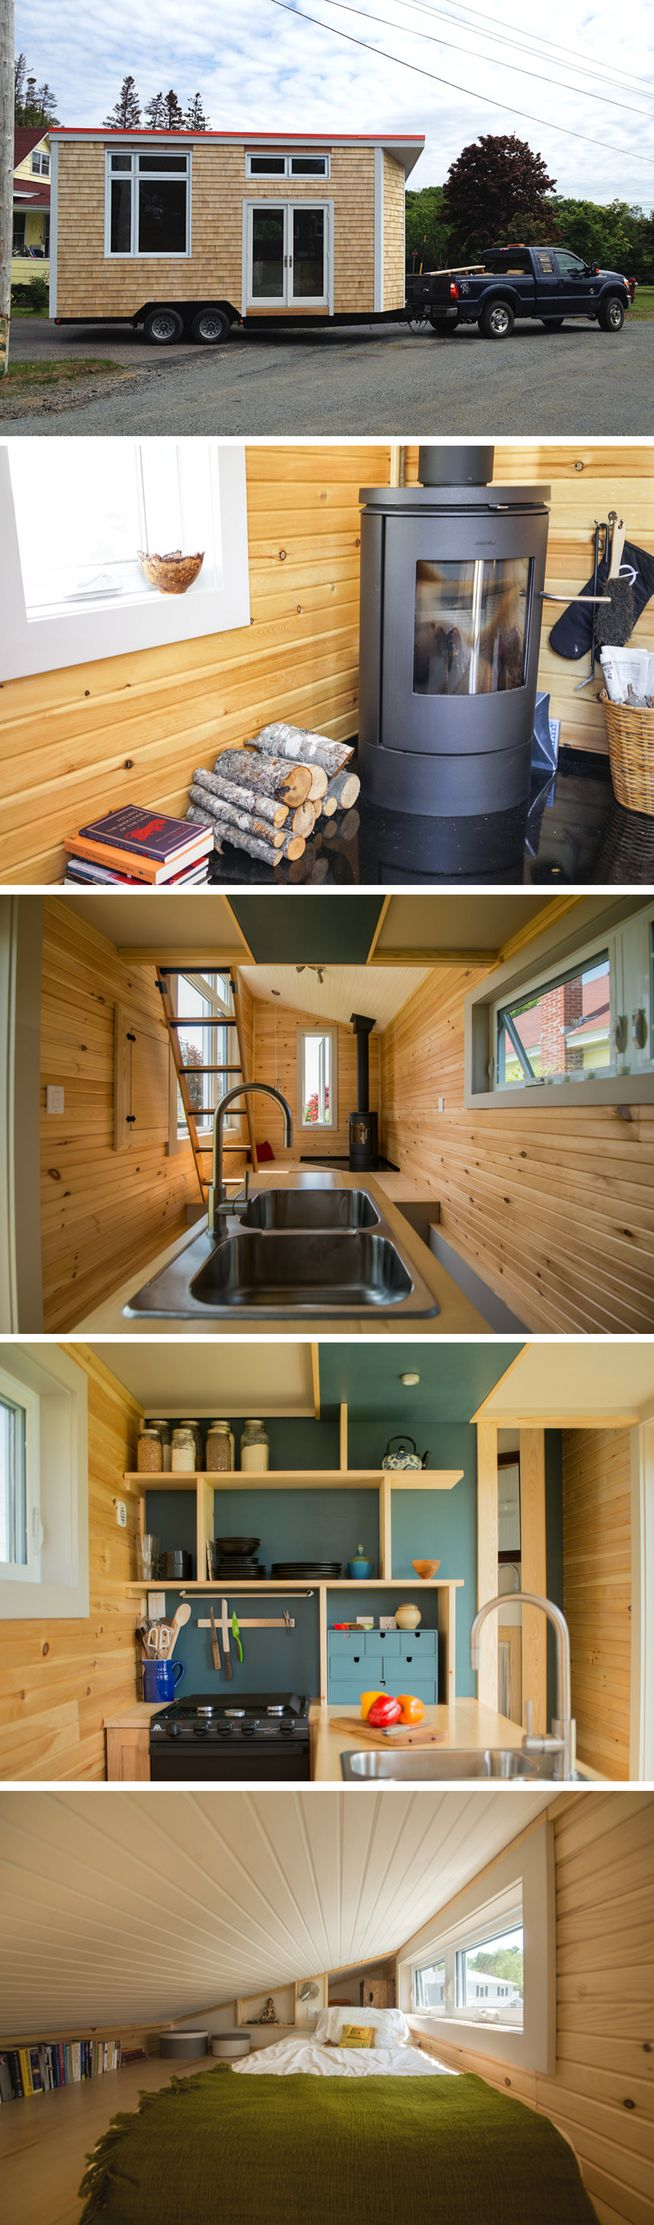 the harmony house a tiny house on wheels thats well insulated and can withstand